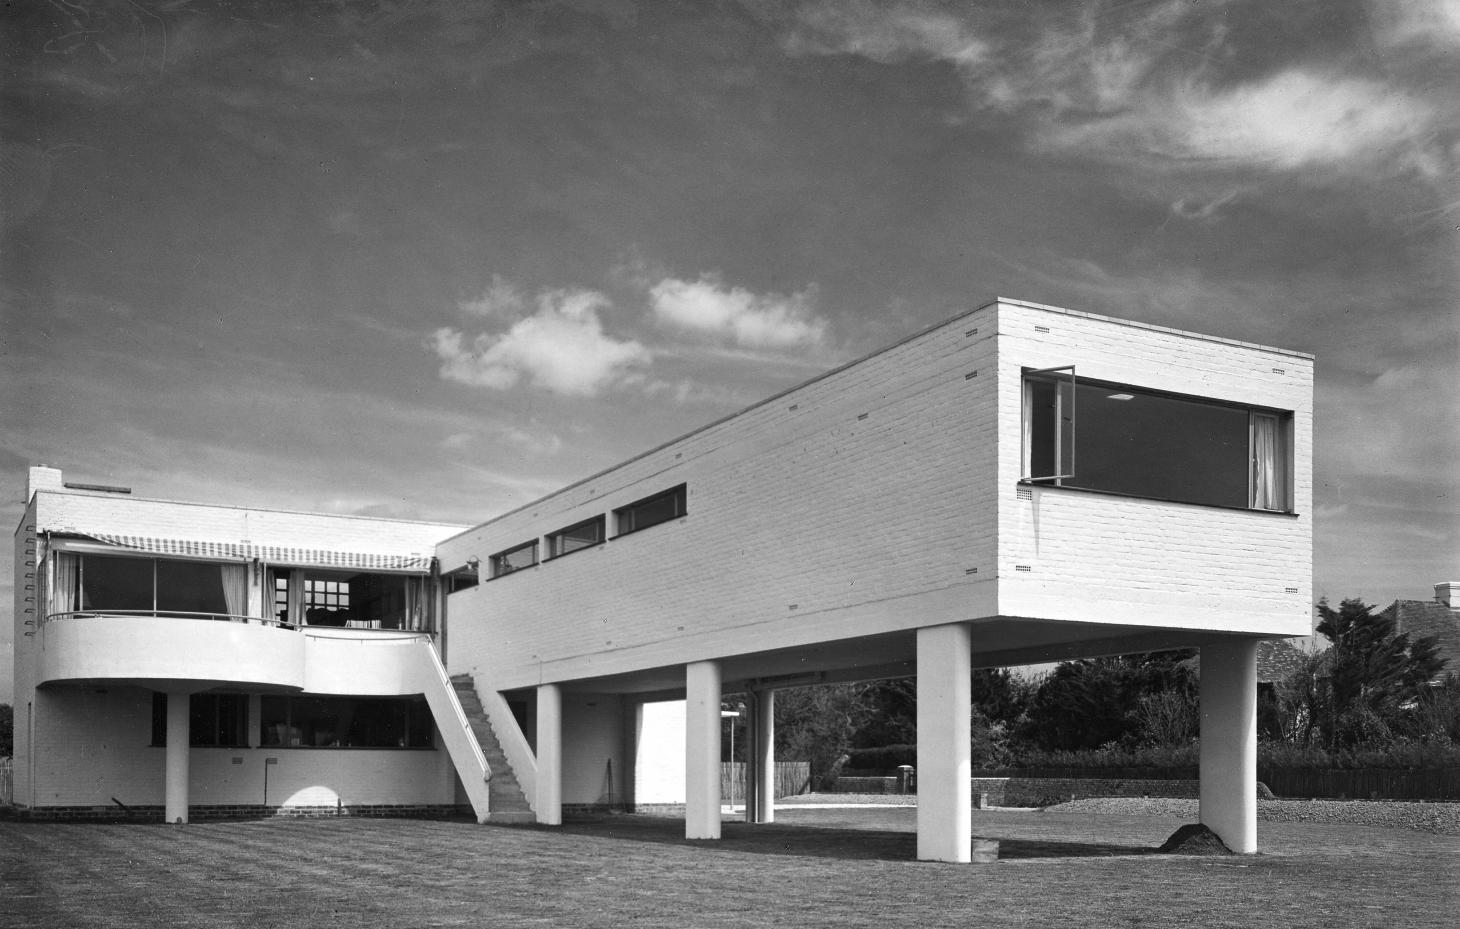 Sea Lane House, Angmering-on-Sea, West Sussex, 1937 by architects Yorke and Breuer (c) Dell & Wainwright, RIBA Collections